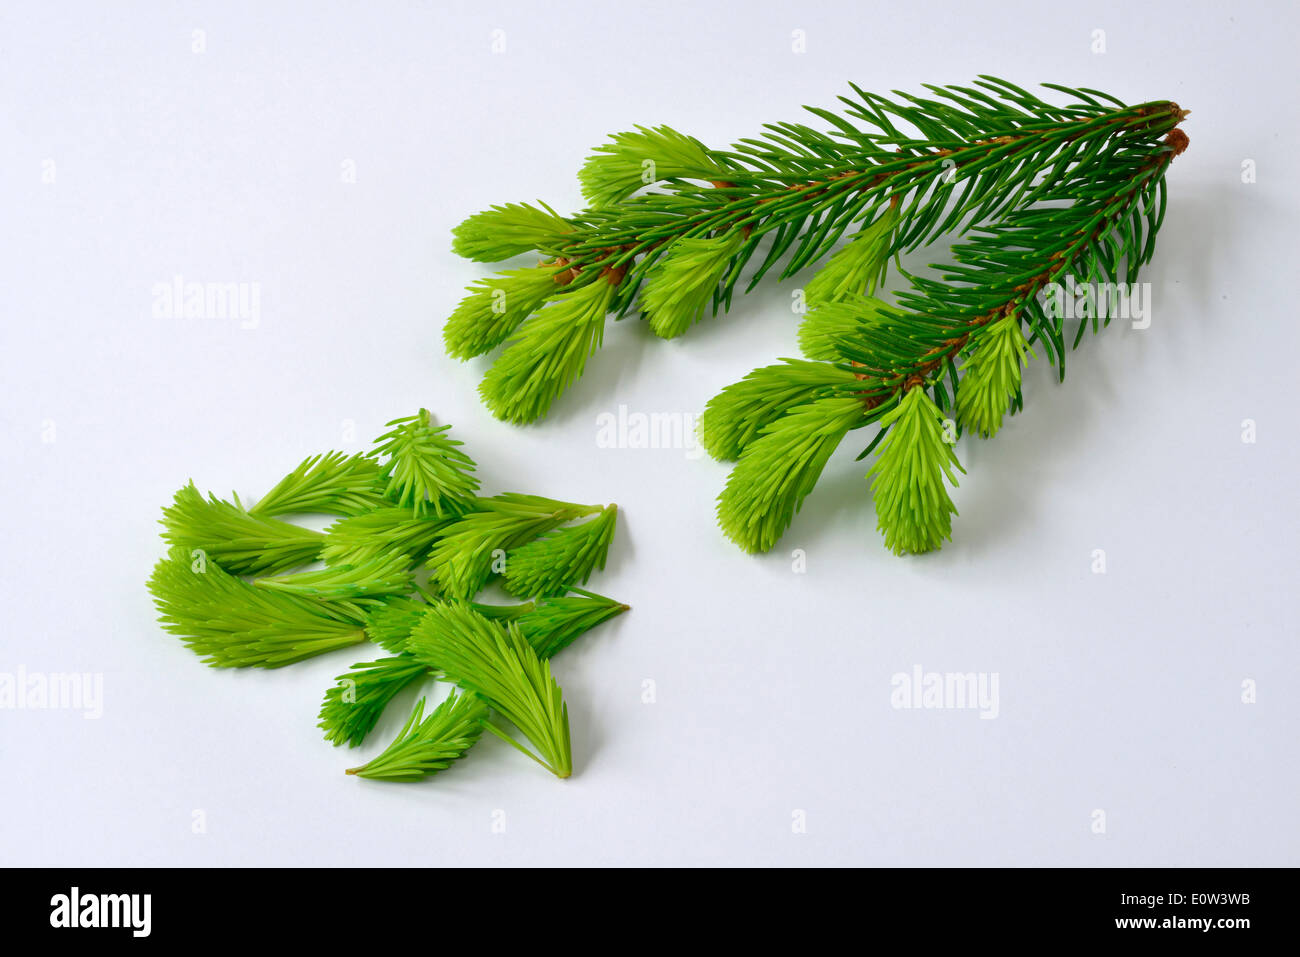 Common Spruce, Norway Spruce (Picea abies). Twig and fresh shoots. Studio picture against a white background - Stock Image